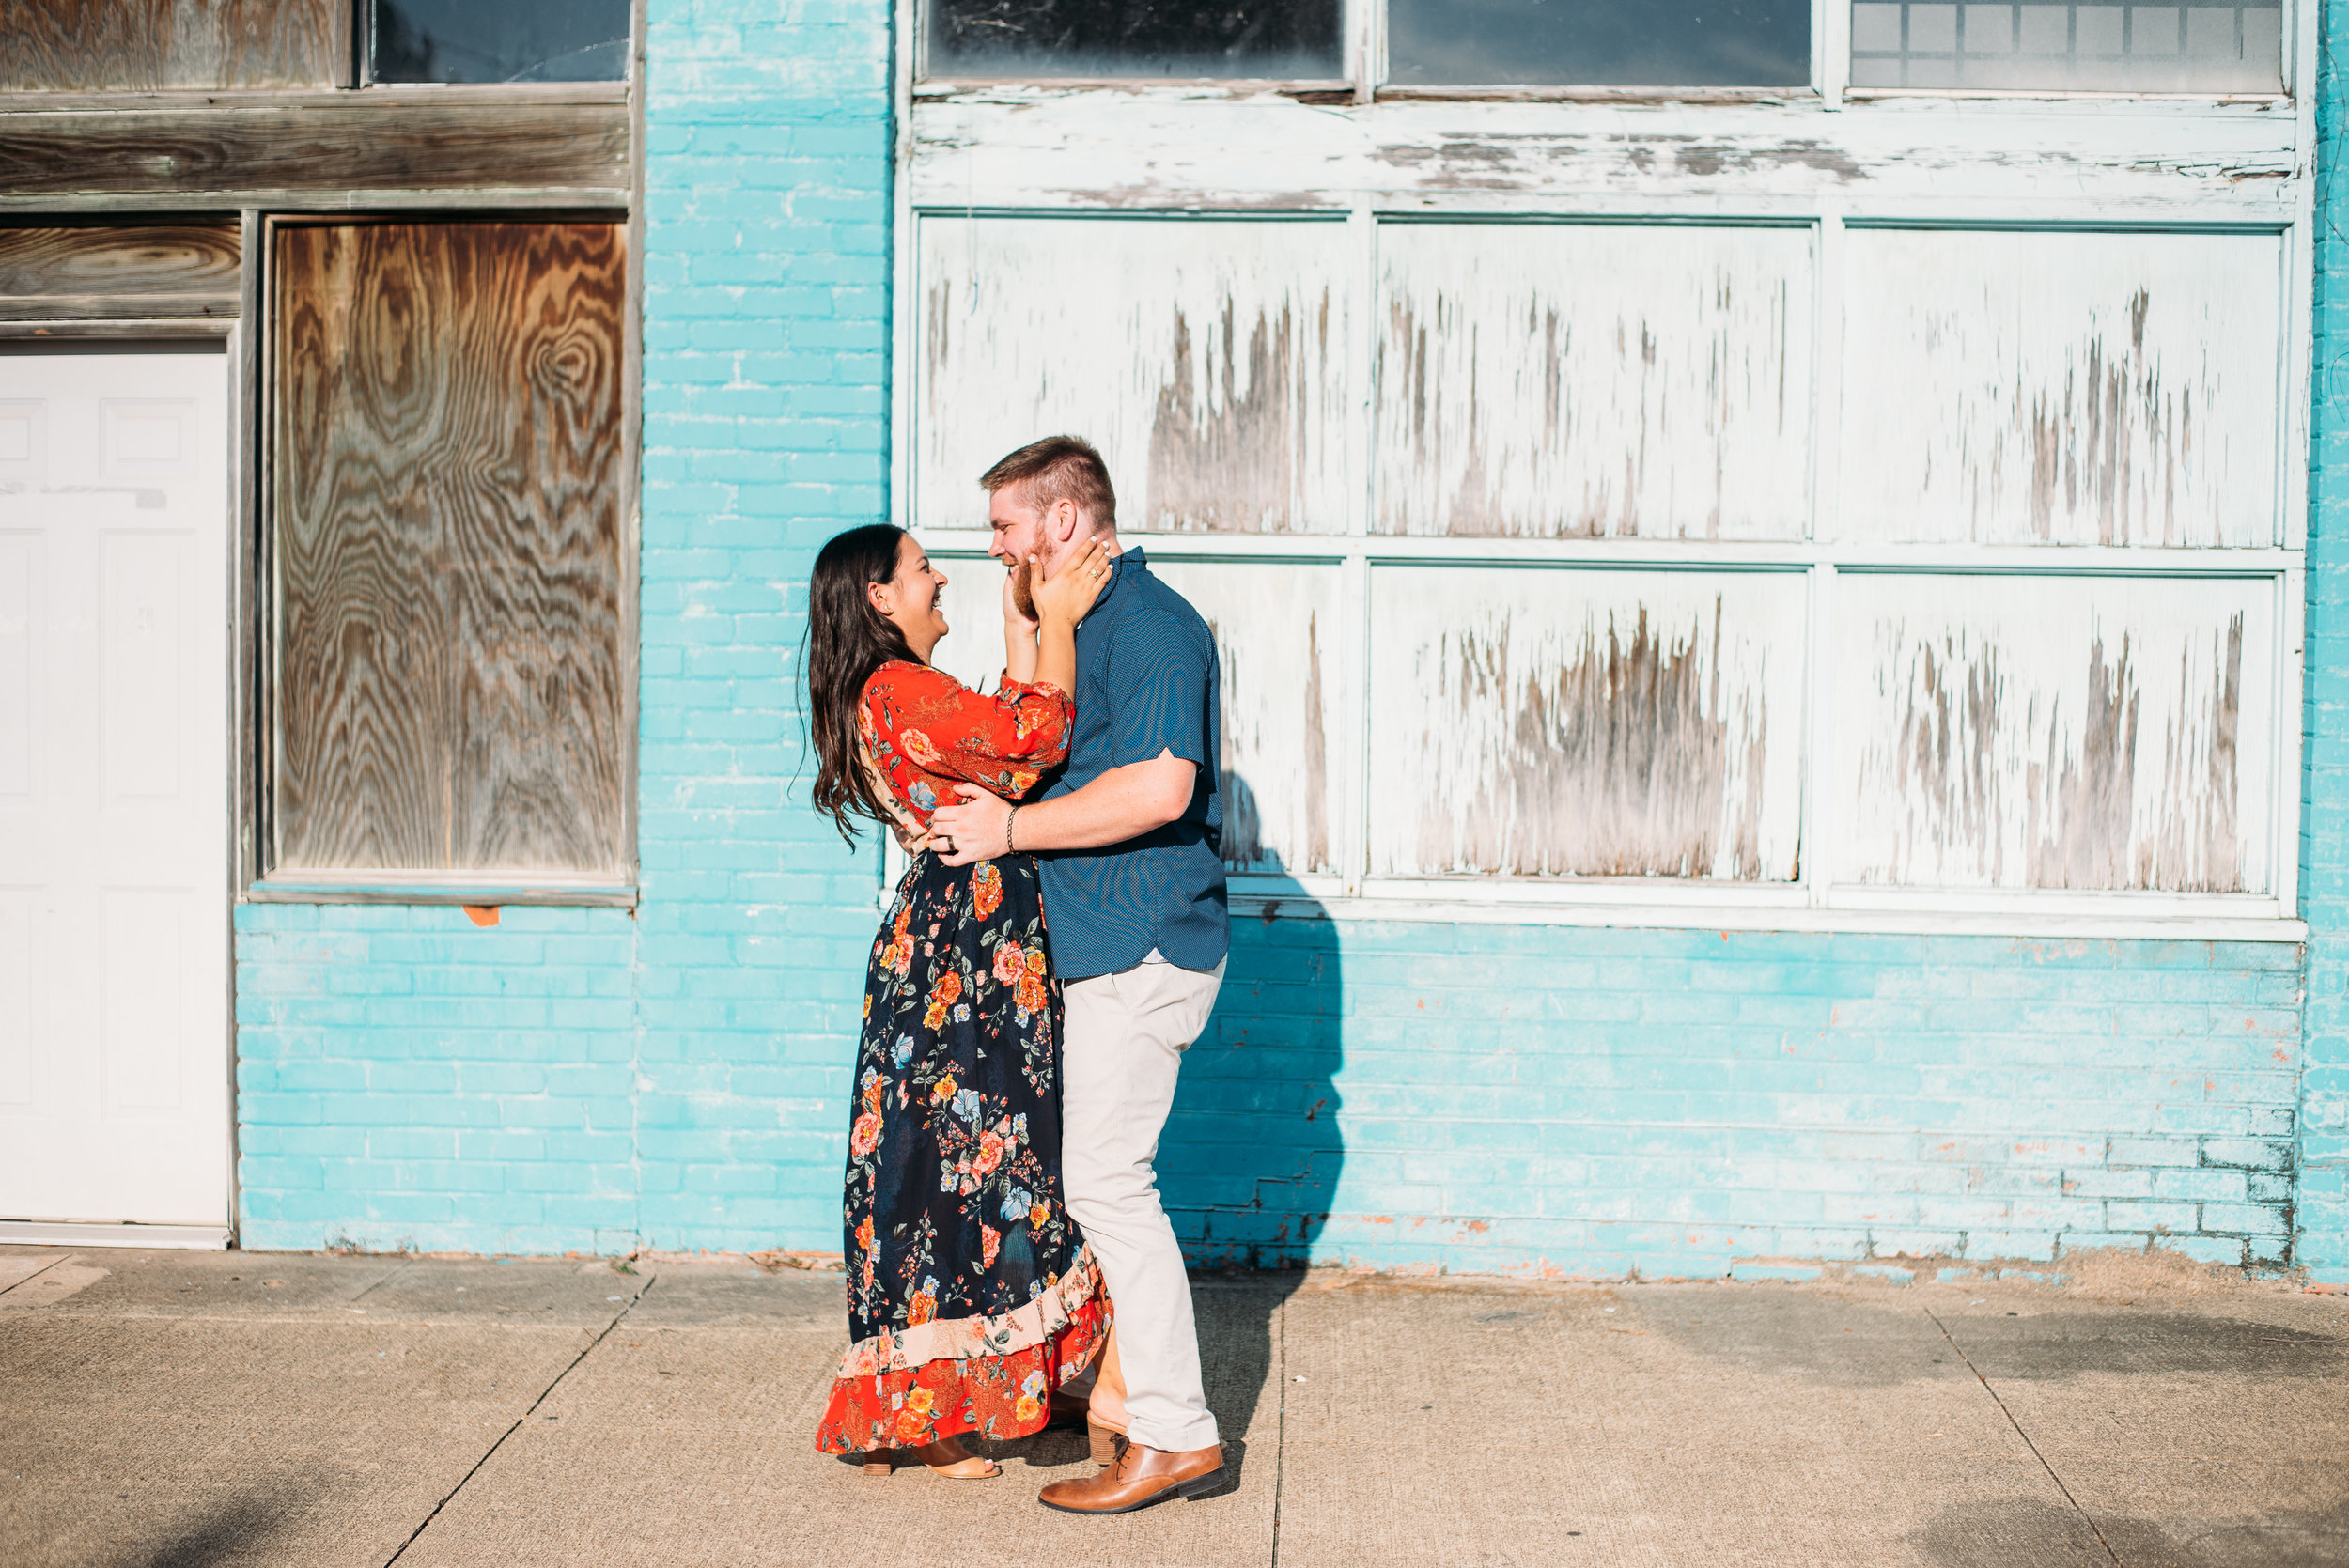 Downtown-Bryan-Engagement-George-Bush-Library-Texas-A&M-University-College-Station-Wedding-Photographer-San-Angel-Photo-Mark-Abigail-Jake-23.jpg